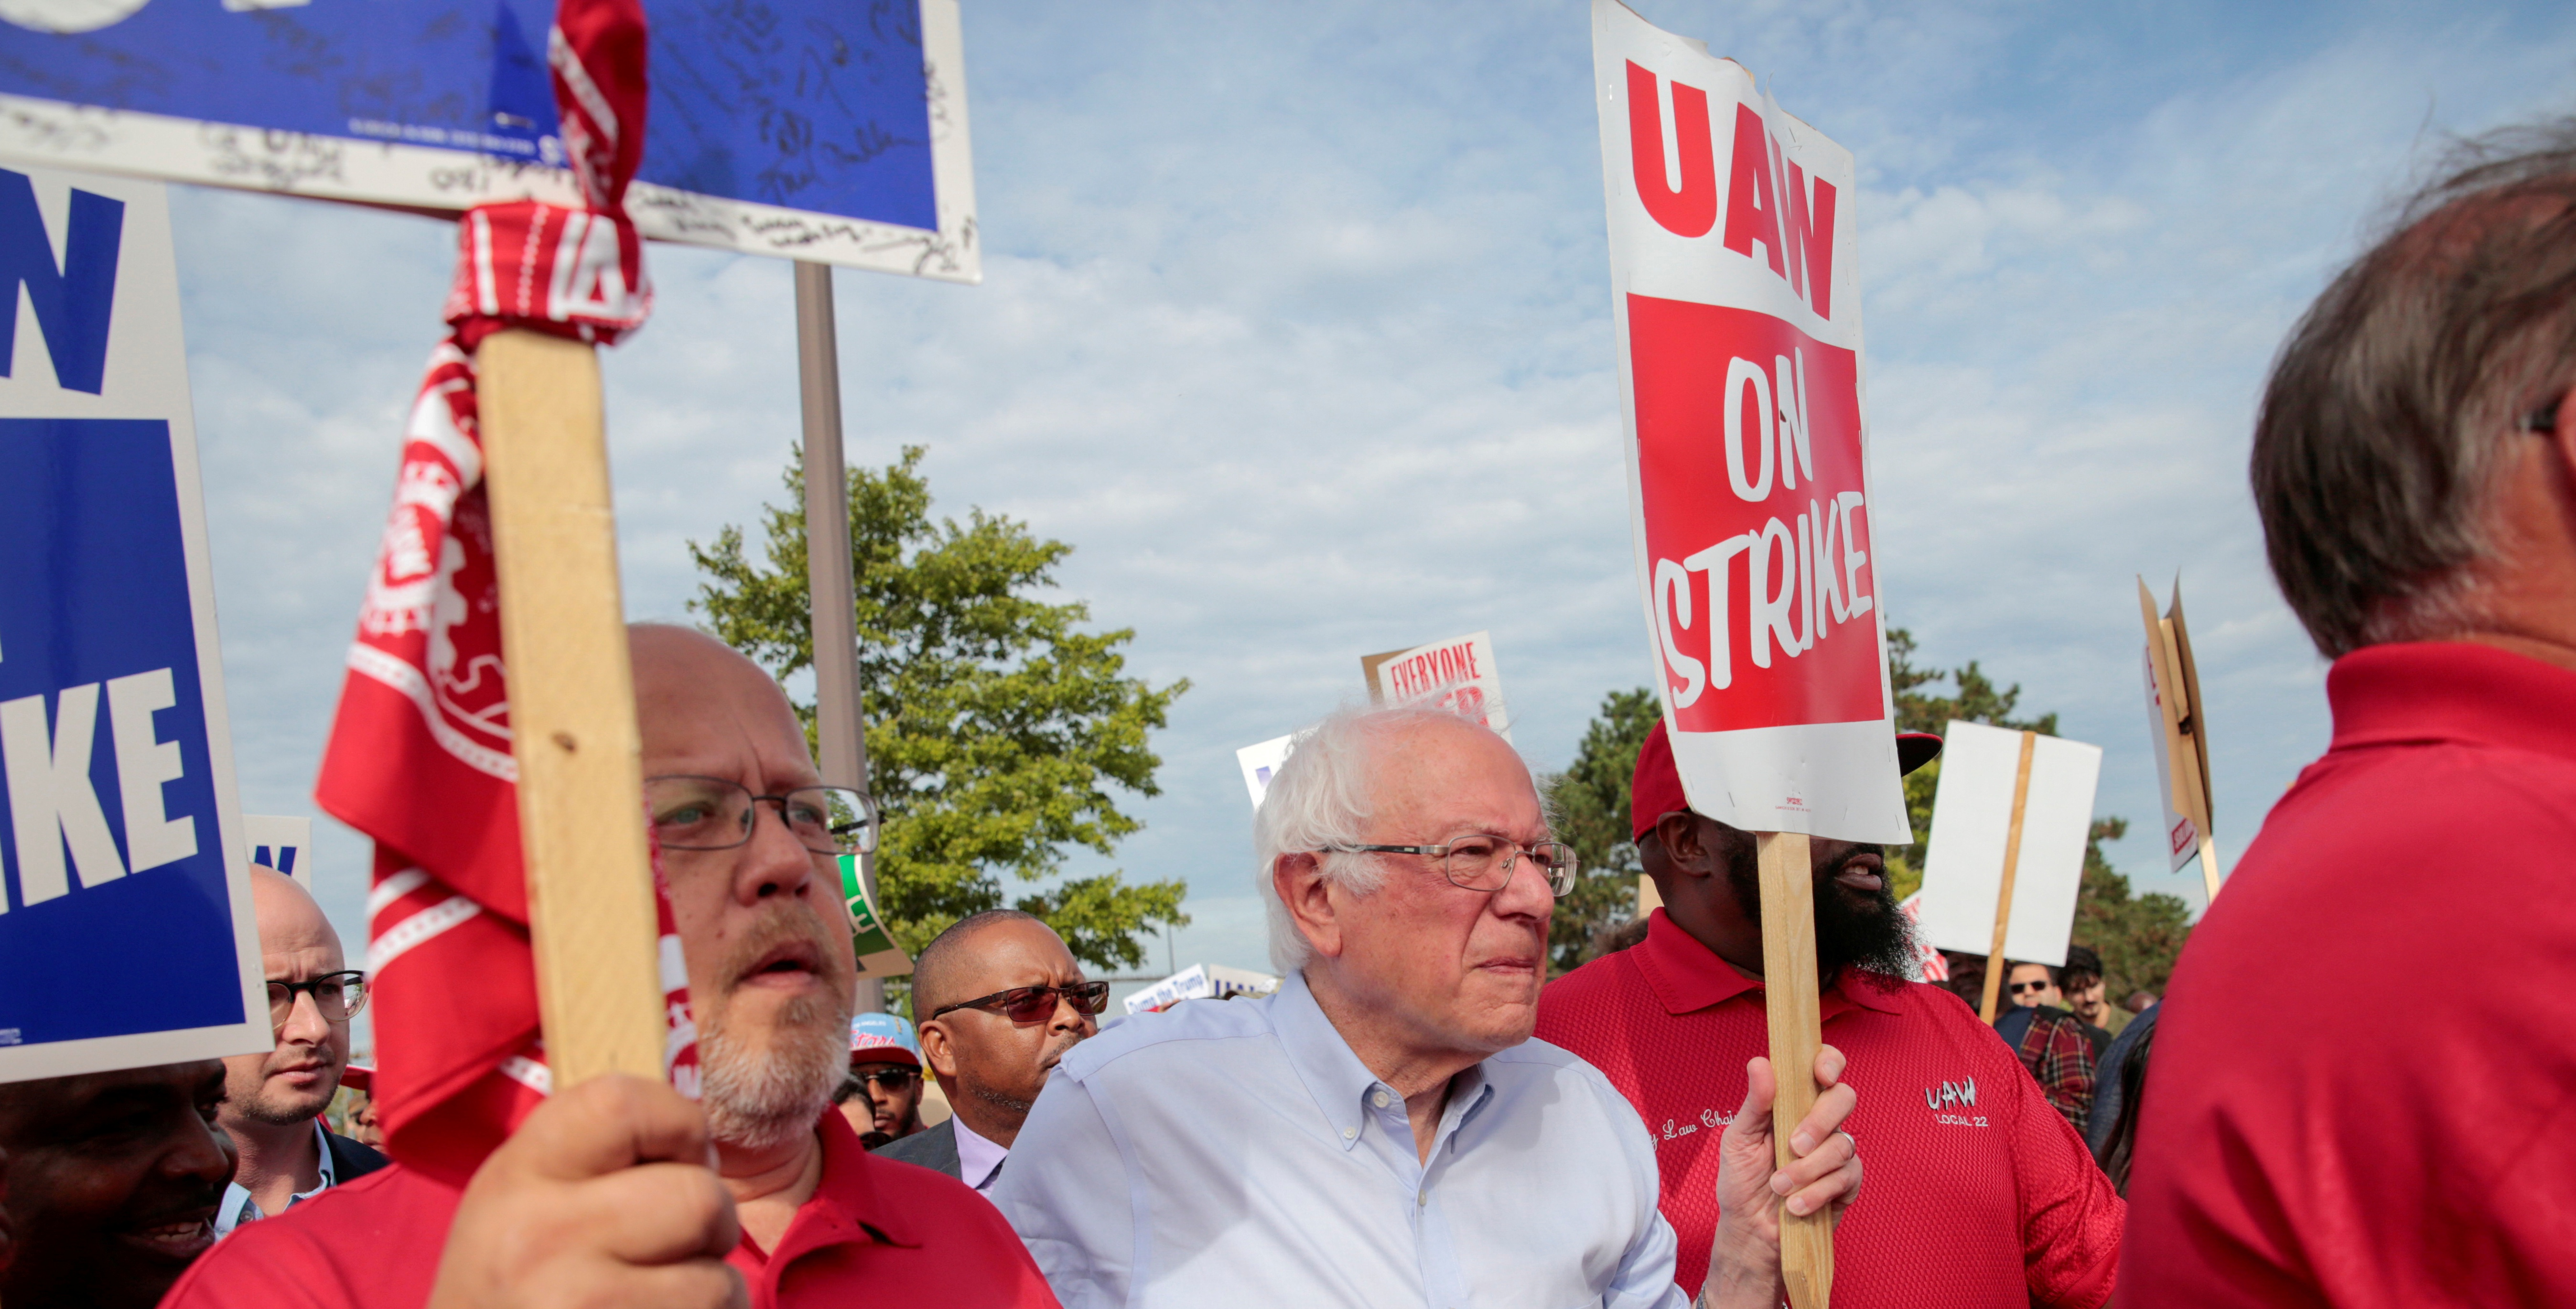 Democratic U.S. presidential candidate Senator Bernie Sanders carries a Strike sign with striking United Auto Workers (UAW) in Hamtramck, Michigan, U.S. September 25, 2019. REUTERS/Rebecca Cook